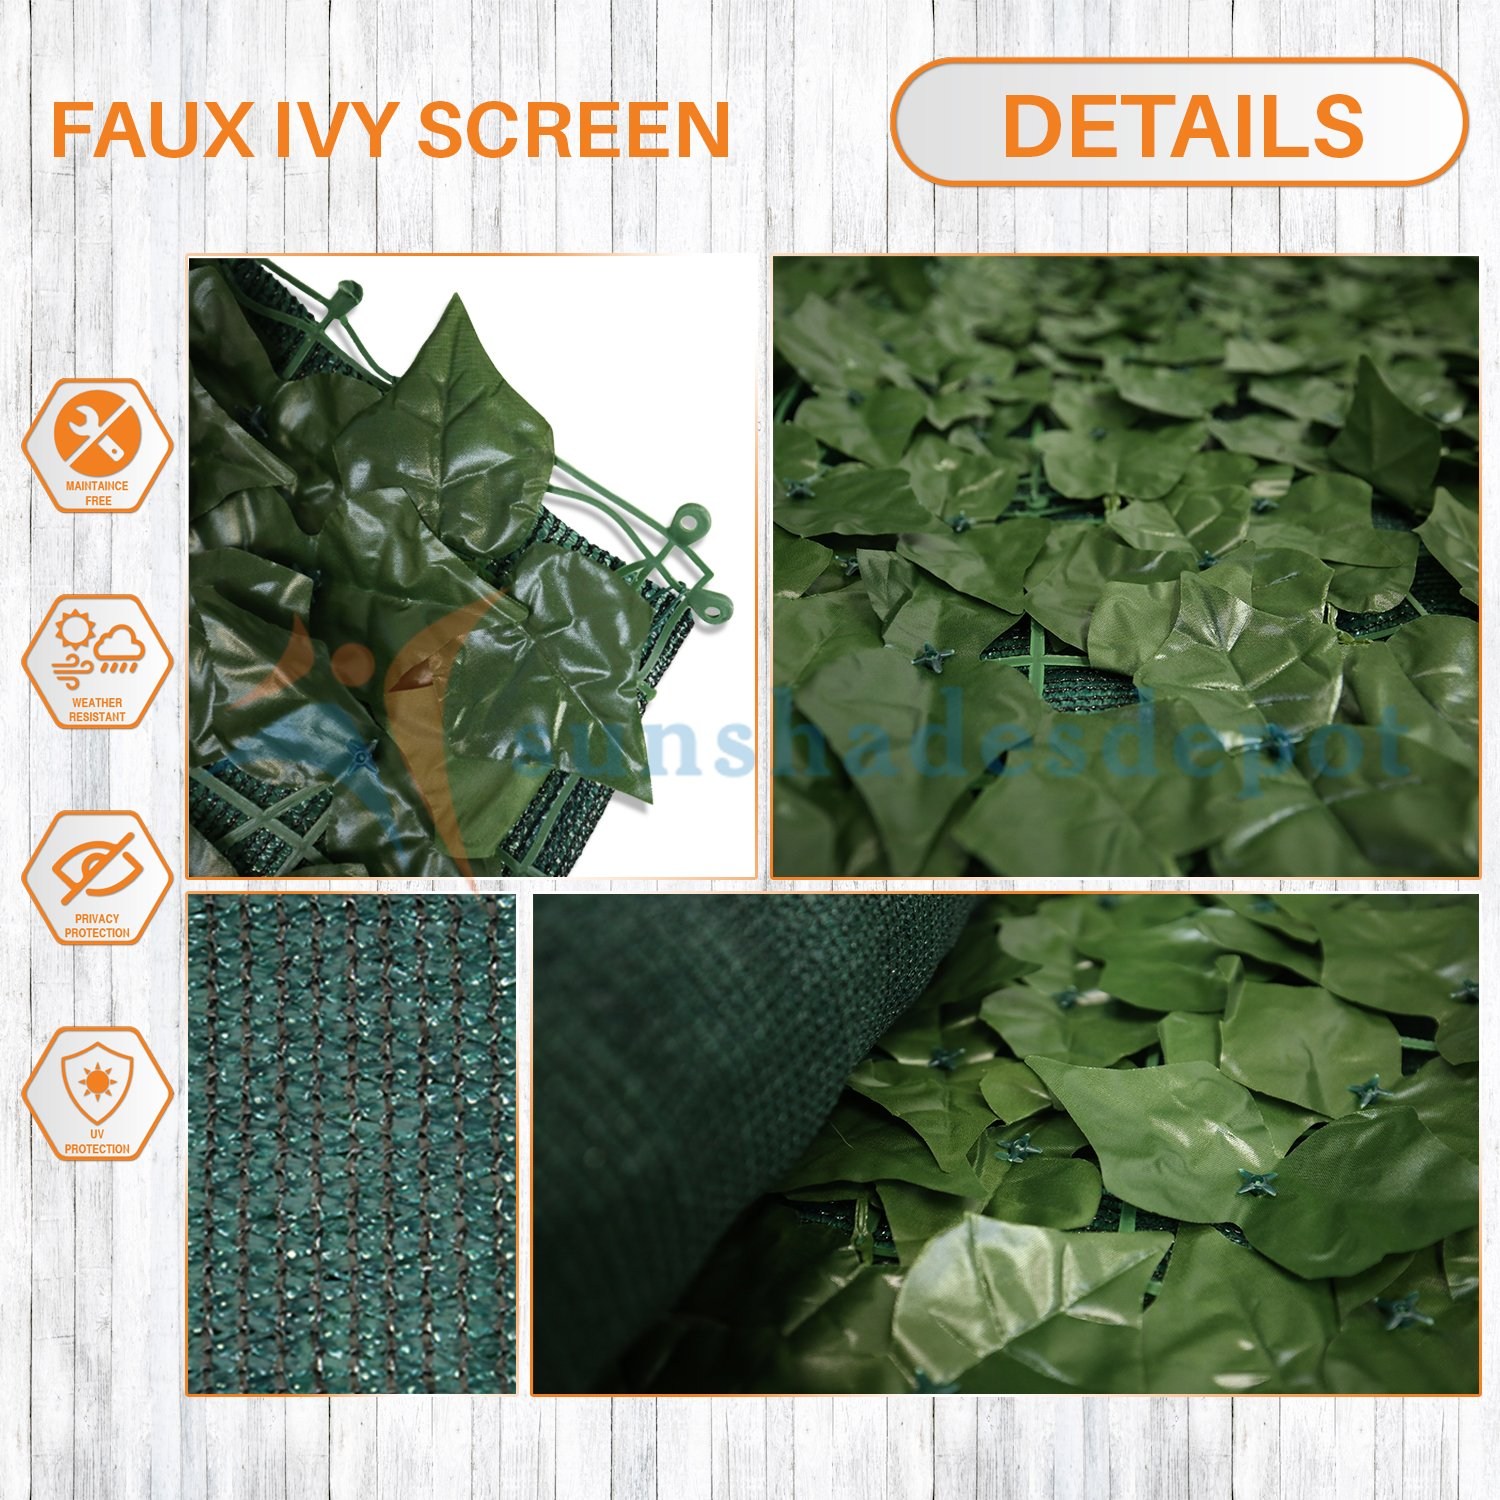 Sunshades Depot 4' x 14' Artificial Faux Ivy Privacy Fence Screen Leaf Vine Decoration Panel with Mesh Back by Sunshades Depot (Image #2)